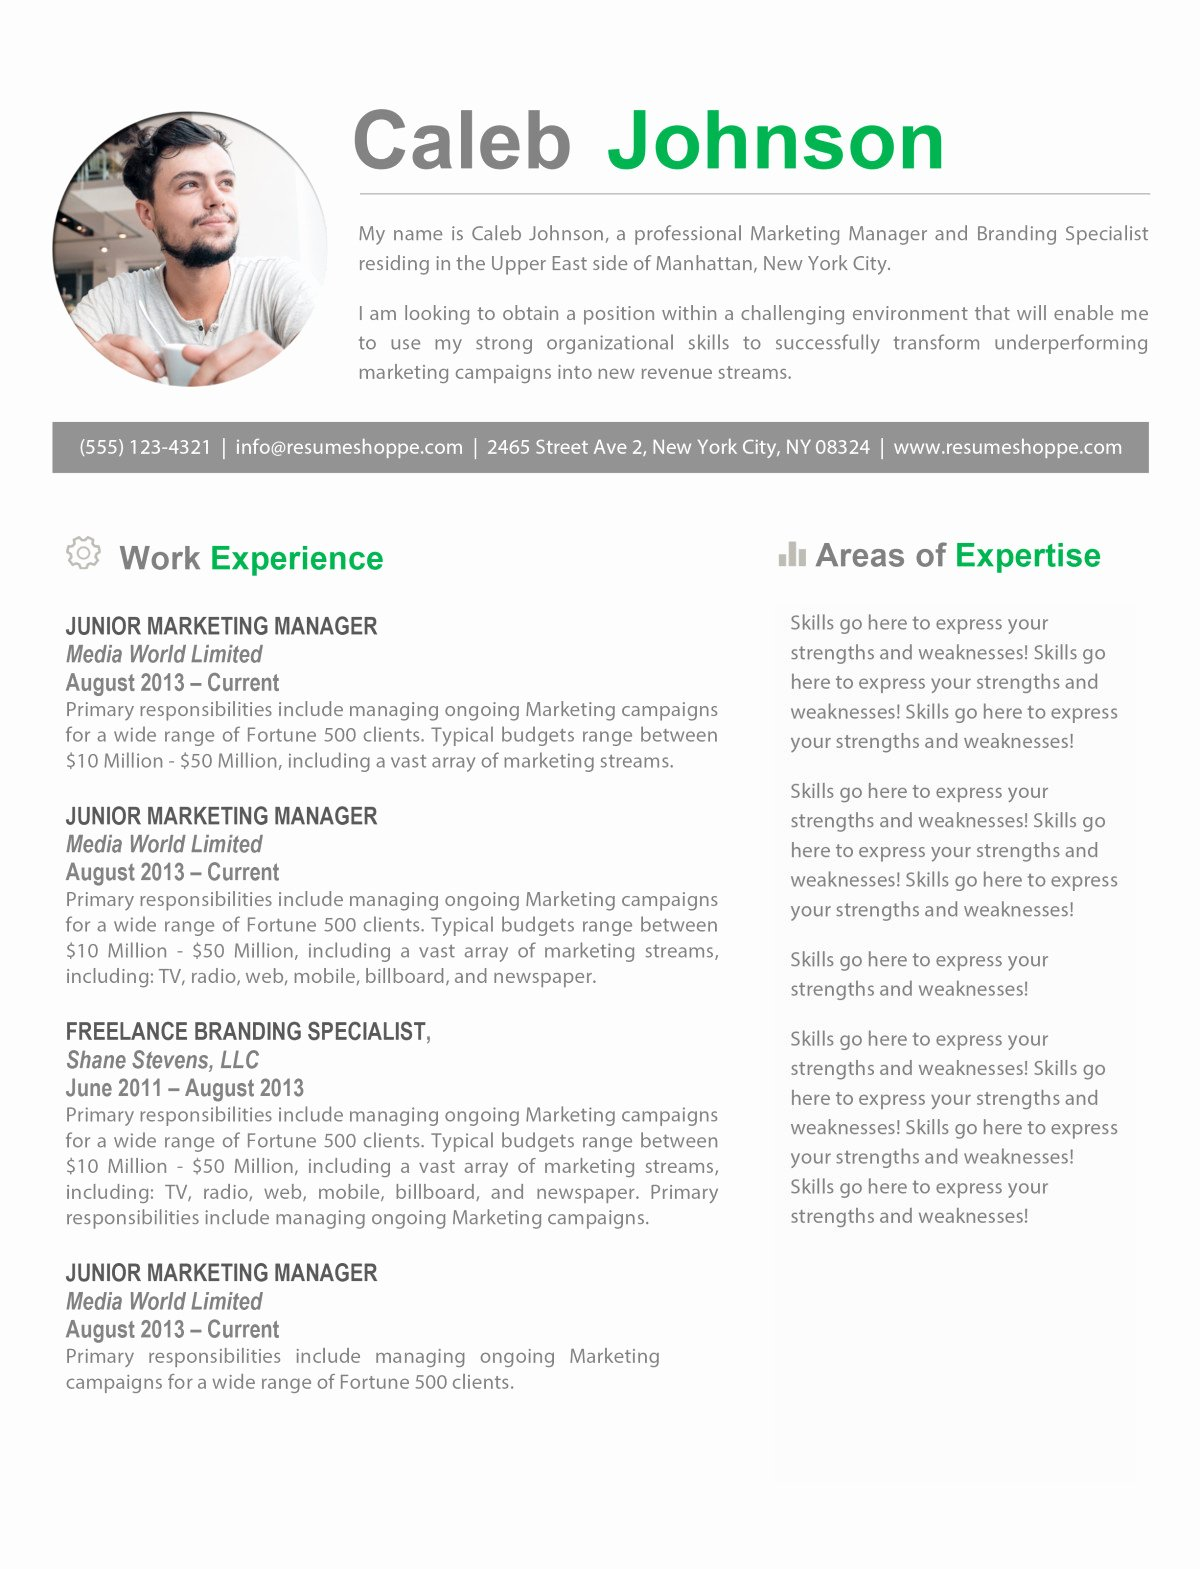 Free Resume Templates for Mac New the Caleb Resume